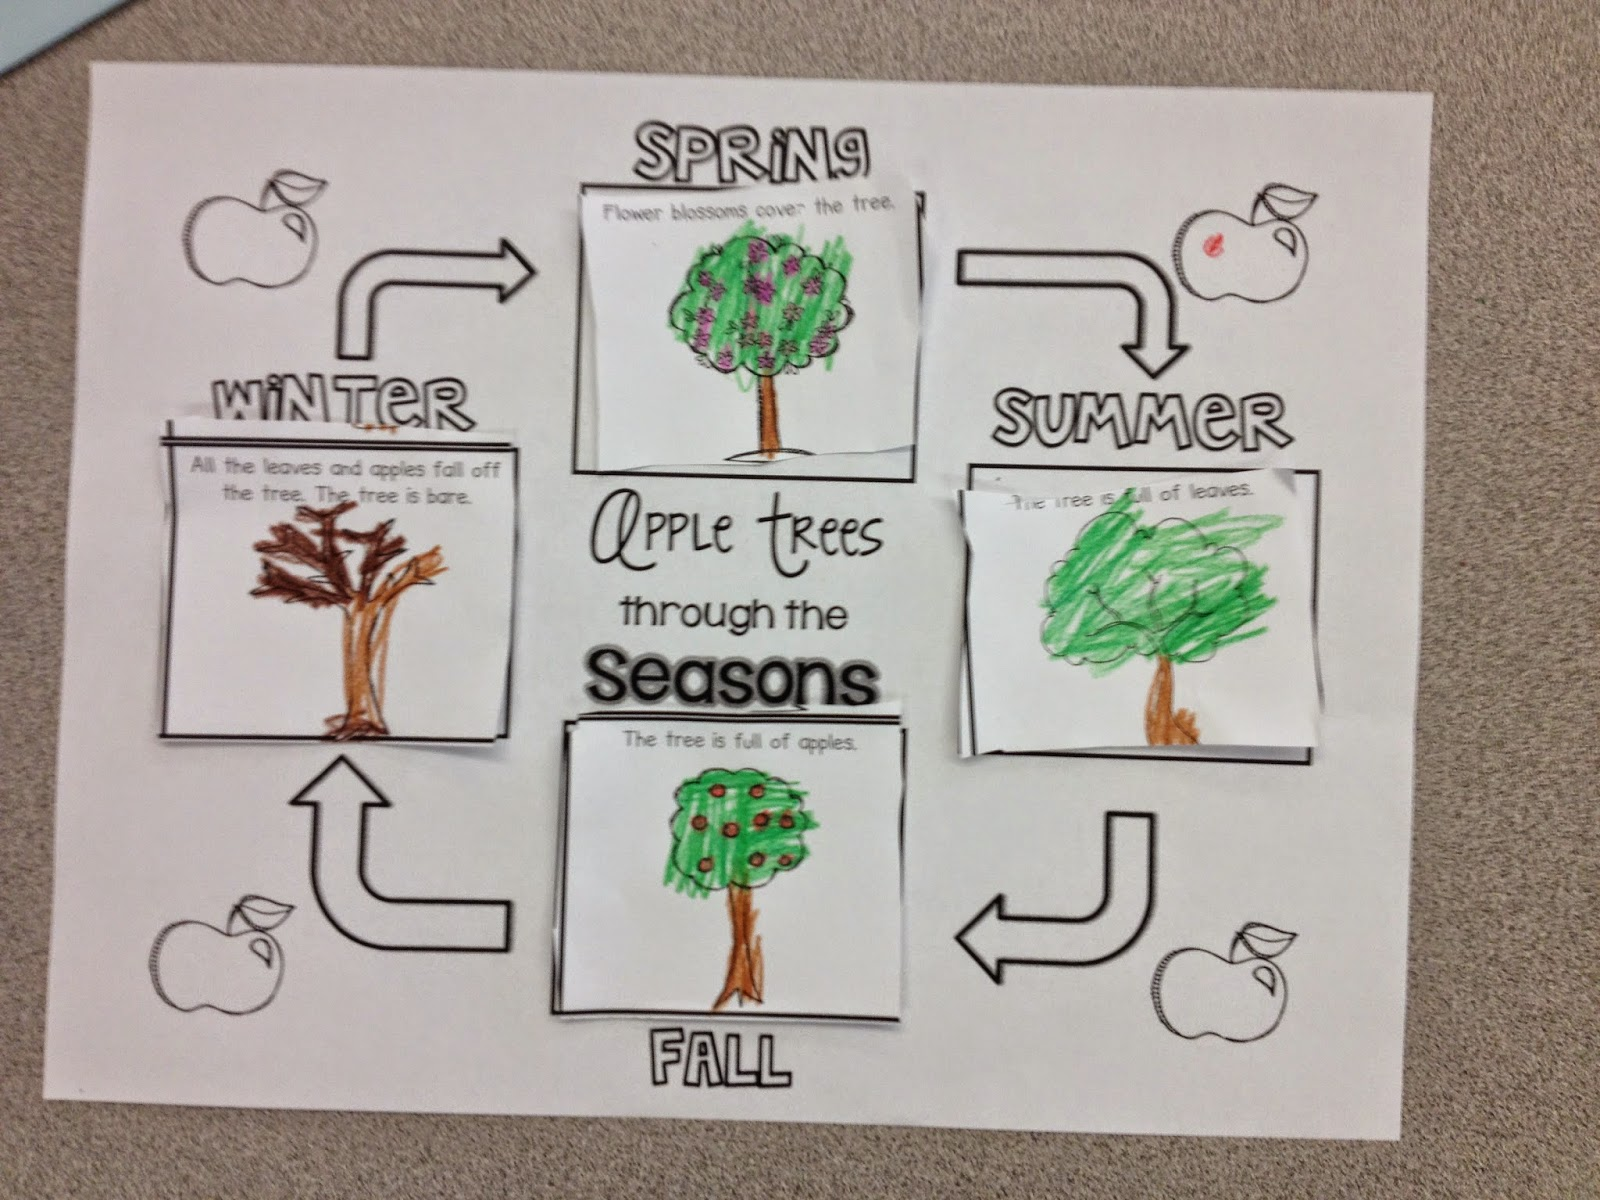 Kinder Kicks In Room 6 The Seasons Of An Apple Tree